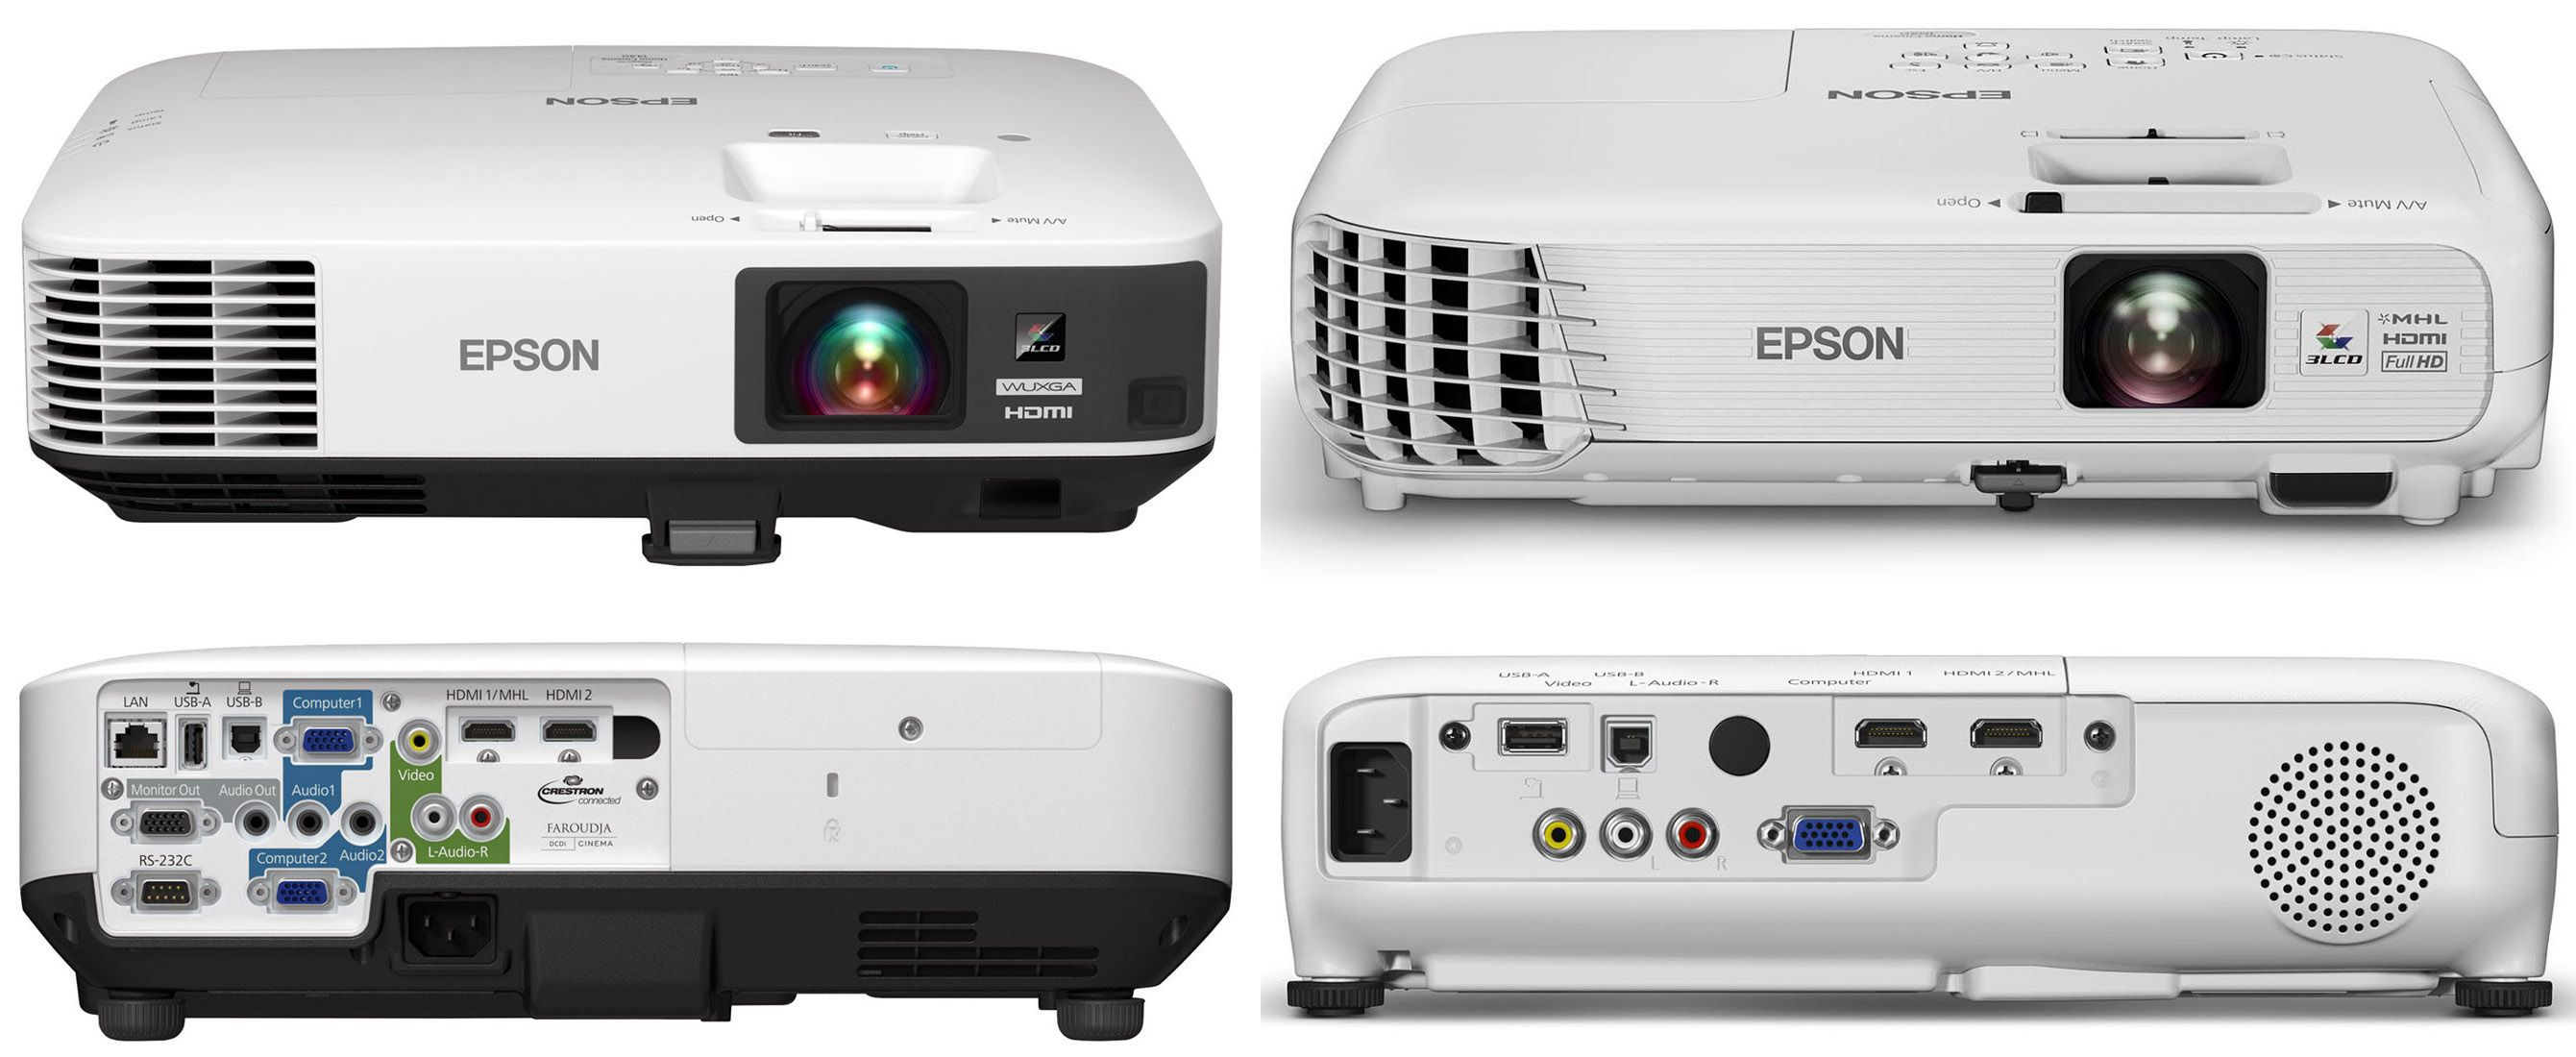 Epson Announces Two High Brightness Video Projectors